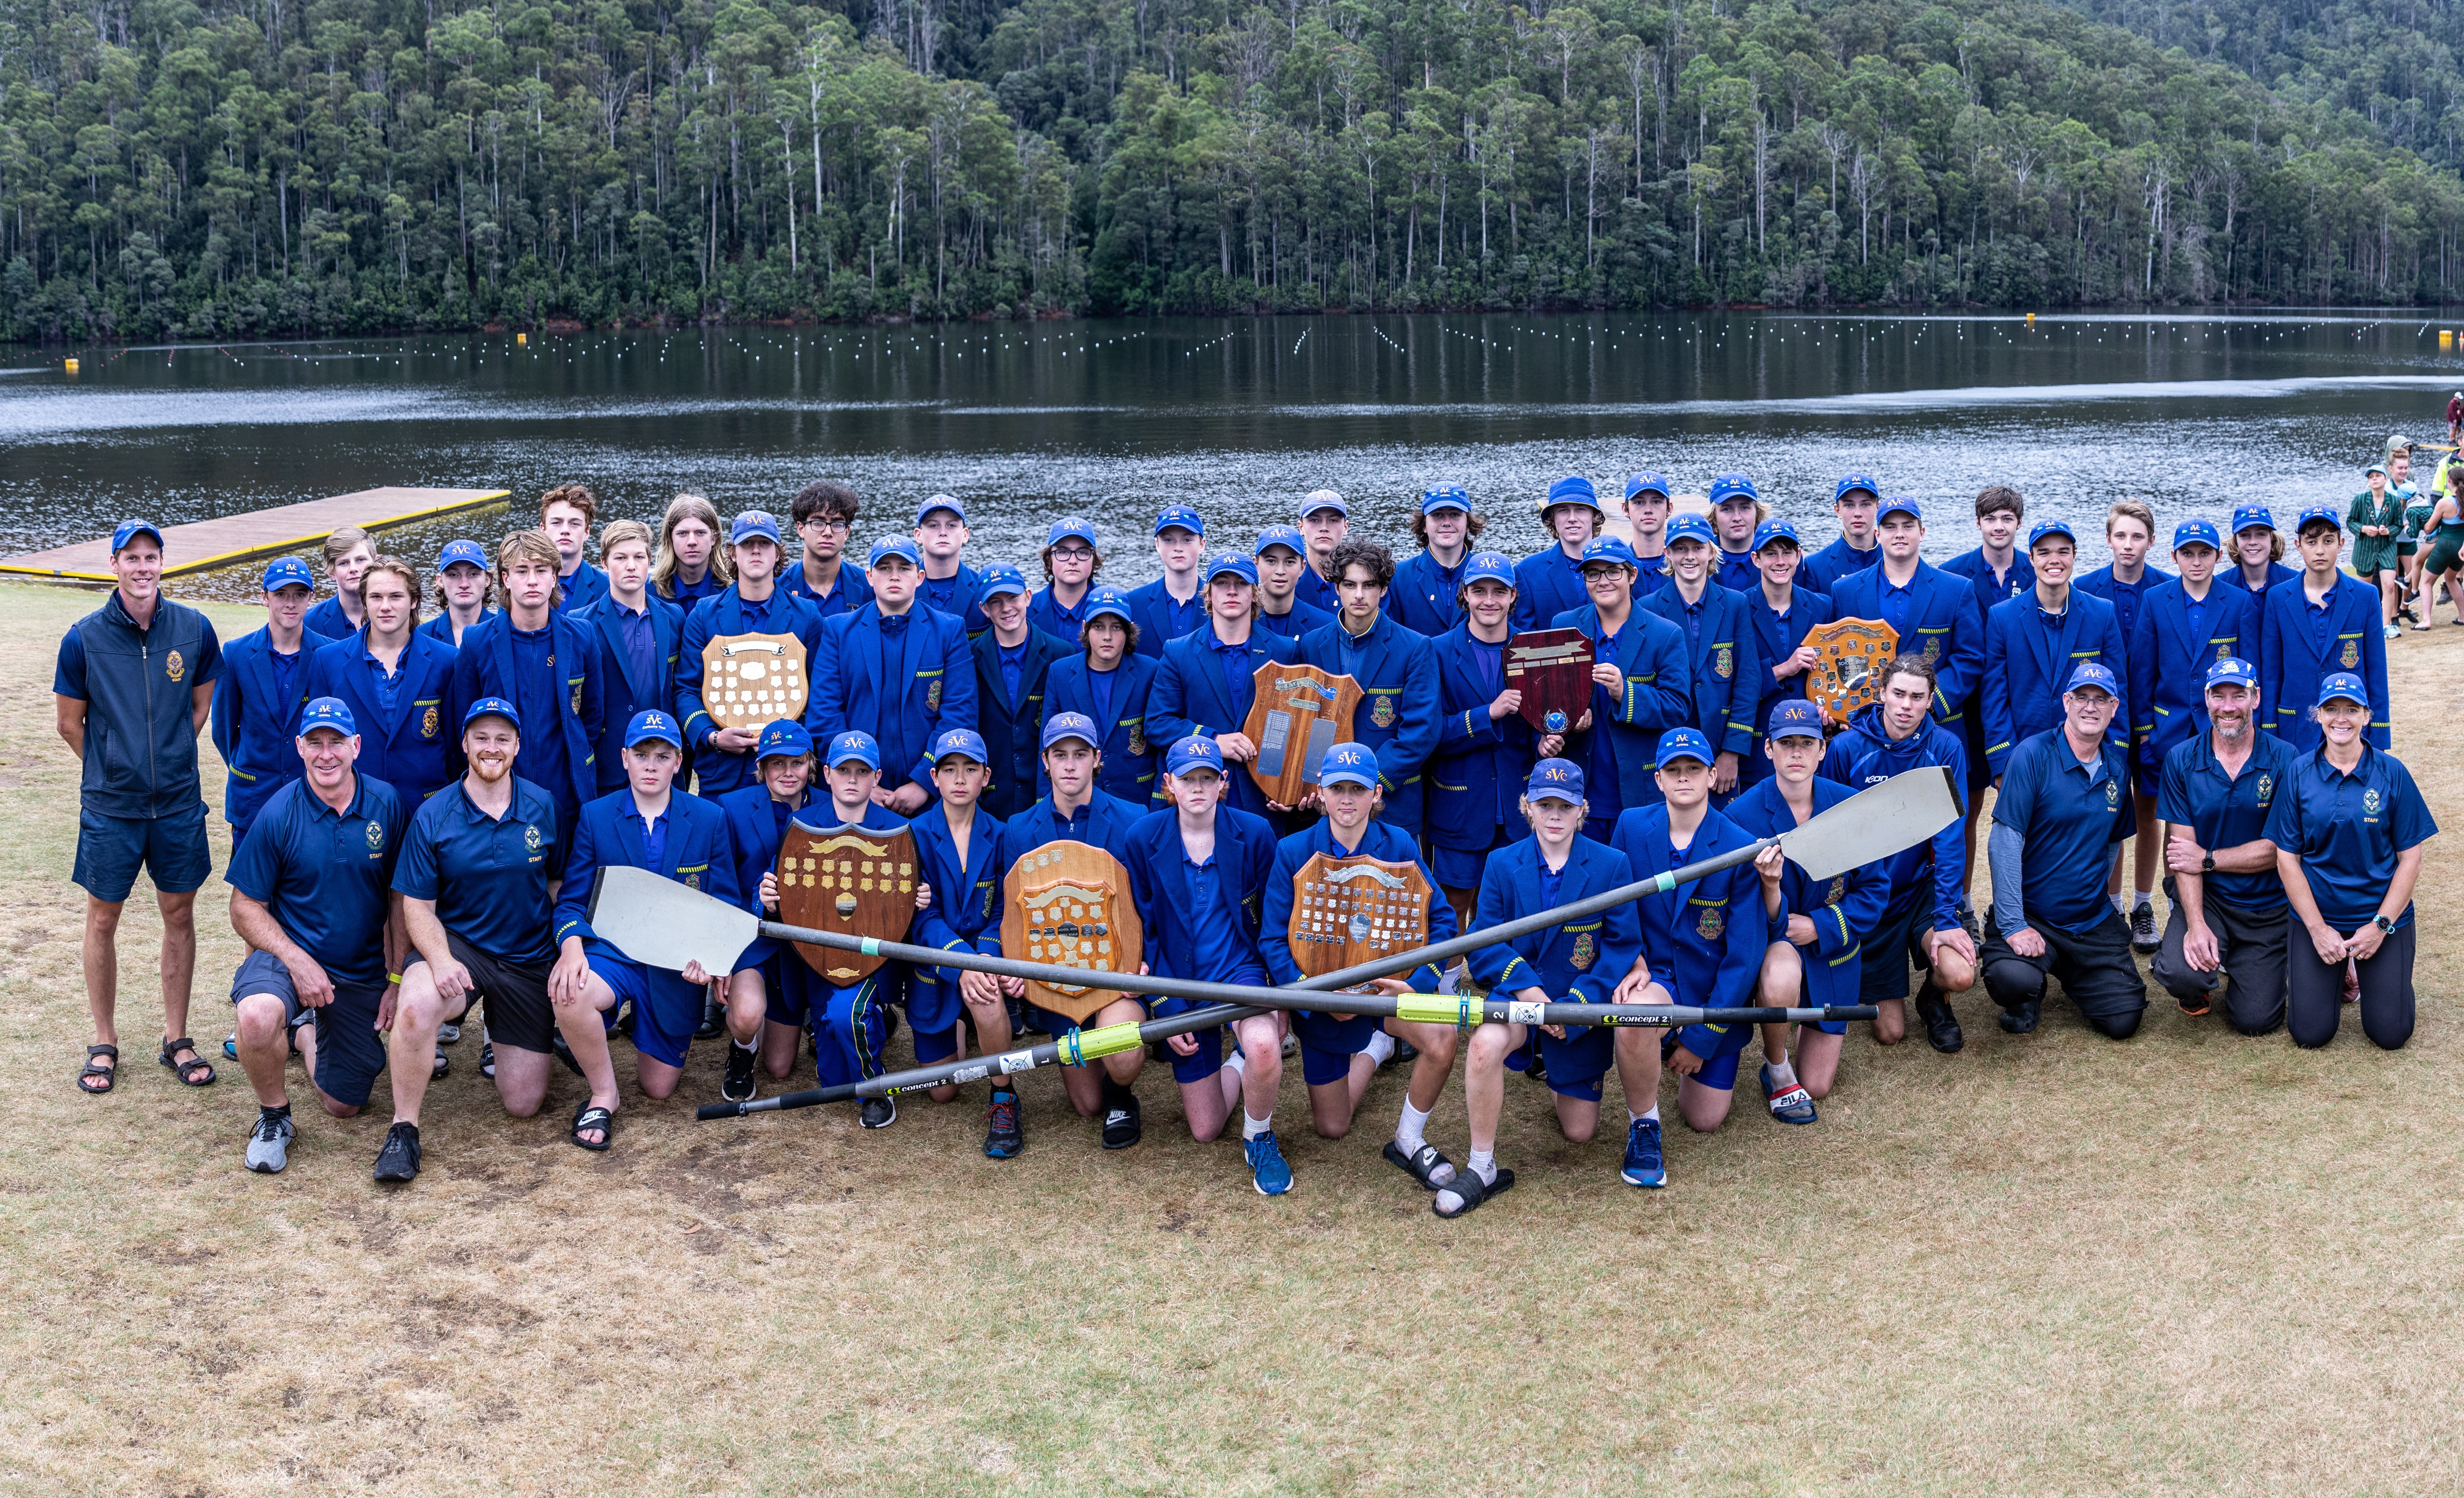 Team SVC, 2021 Head of the River